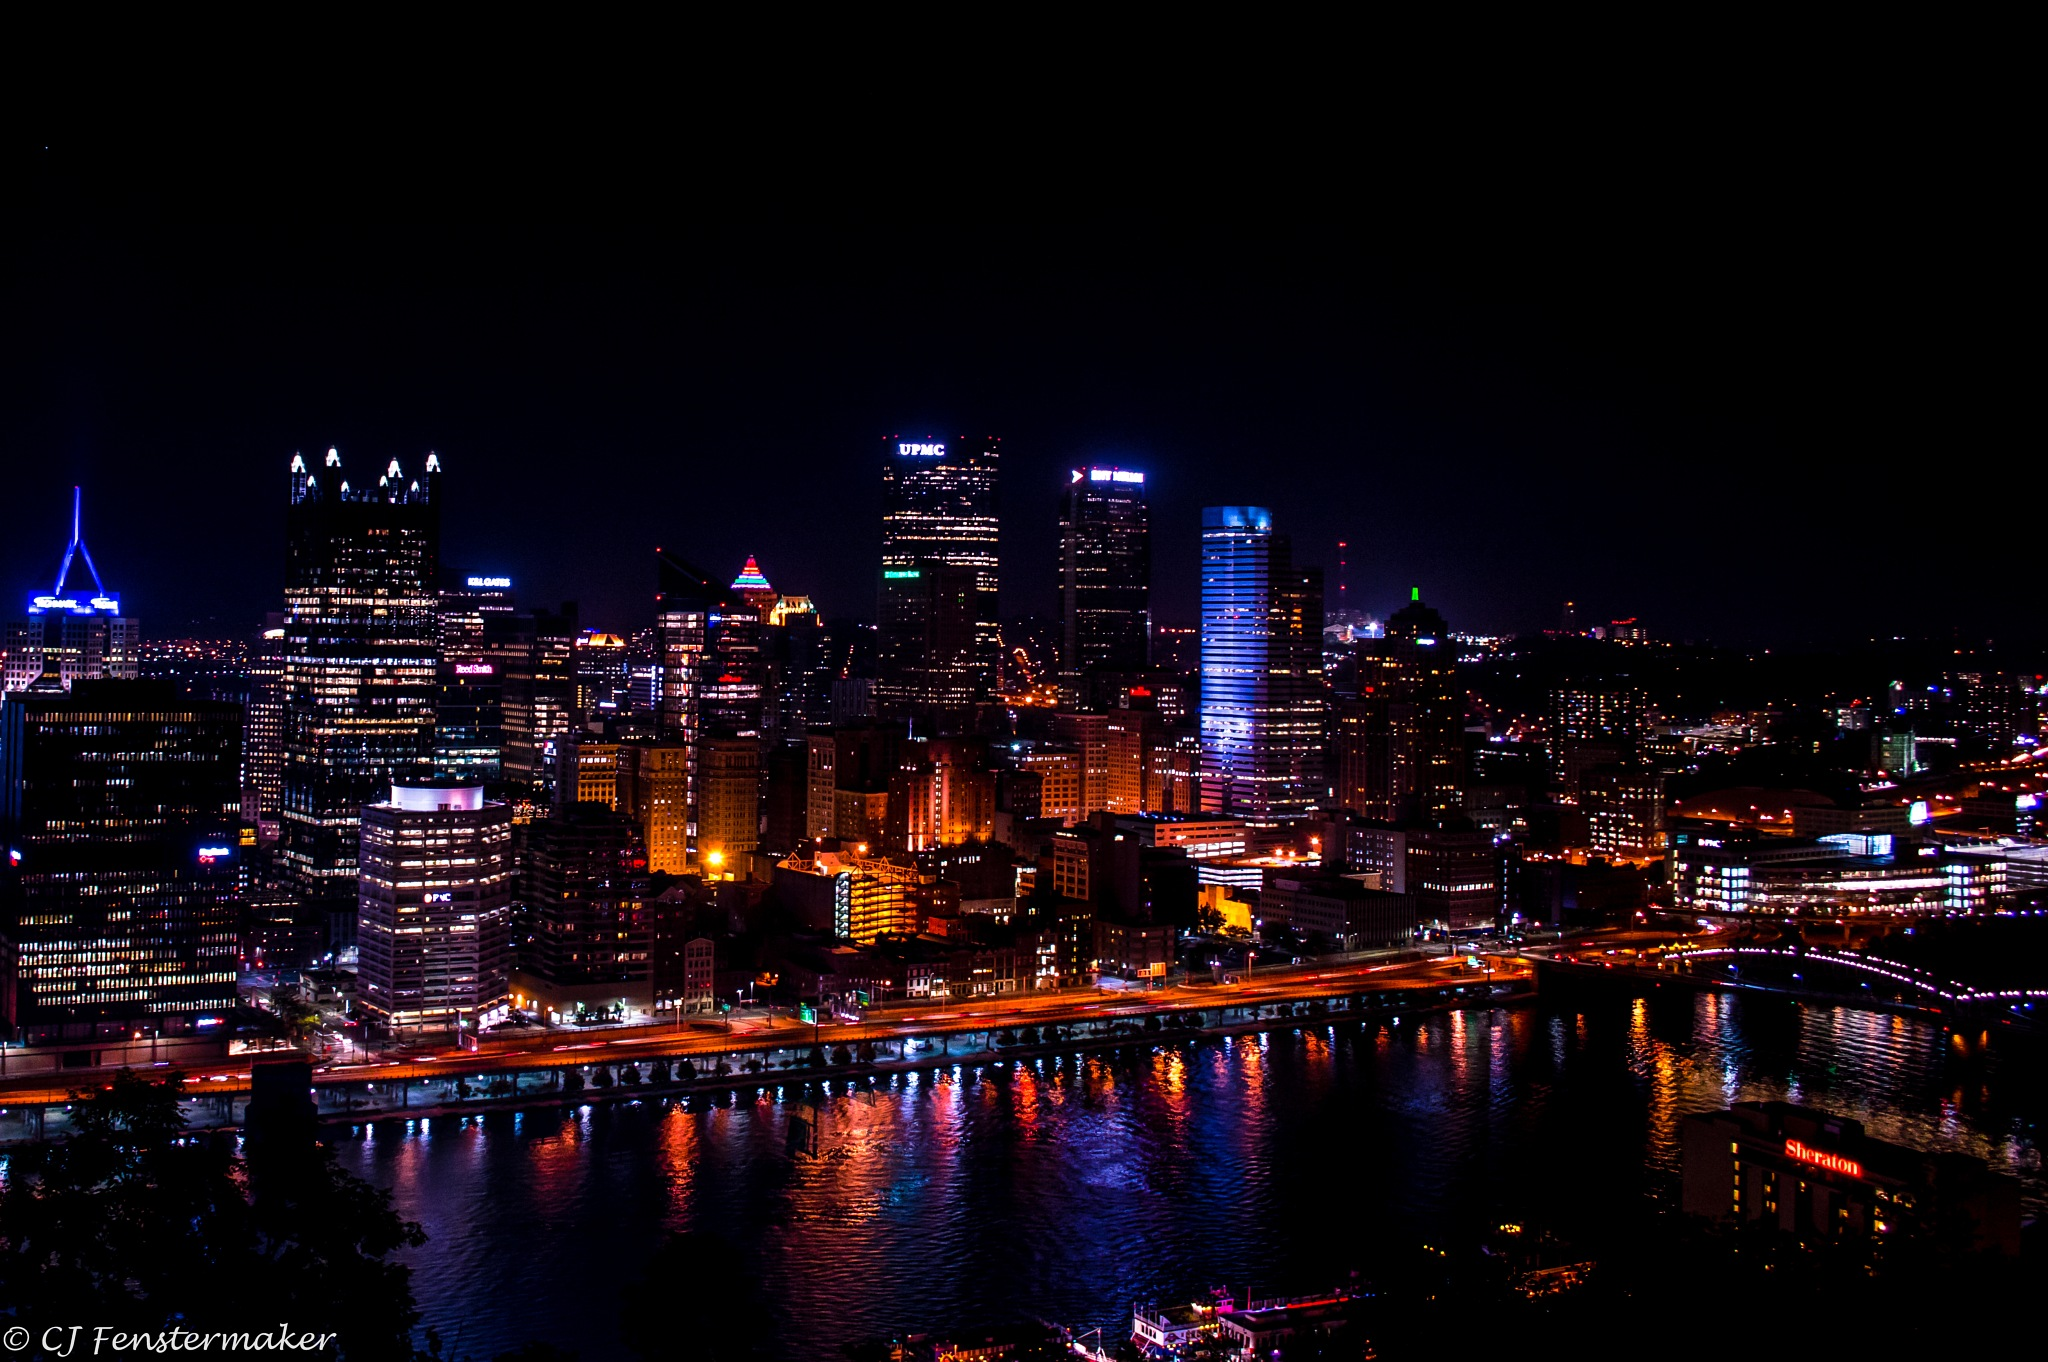 Pittsburgh at Night by CJ Fenstermaker